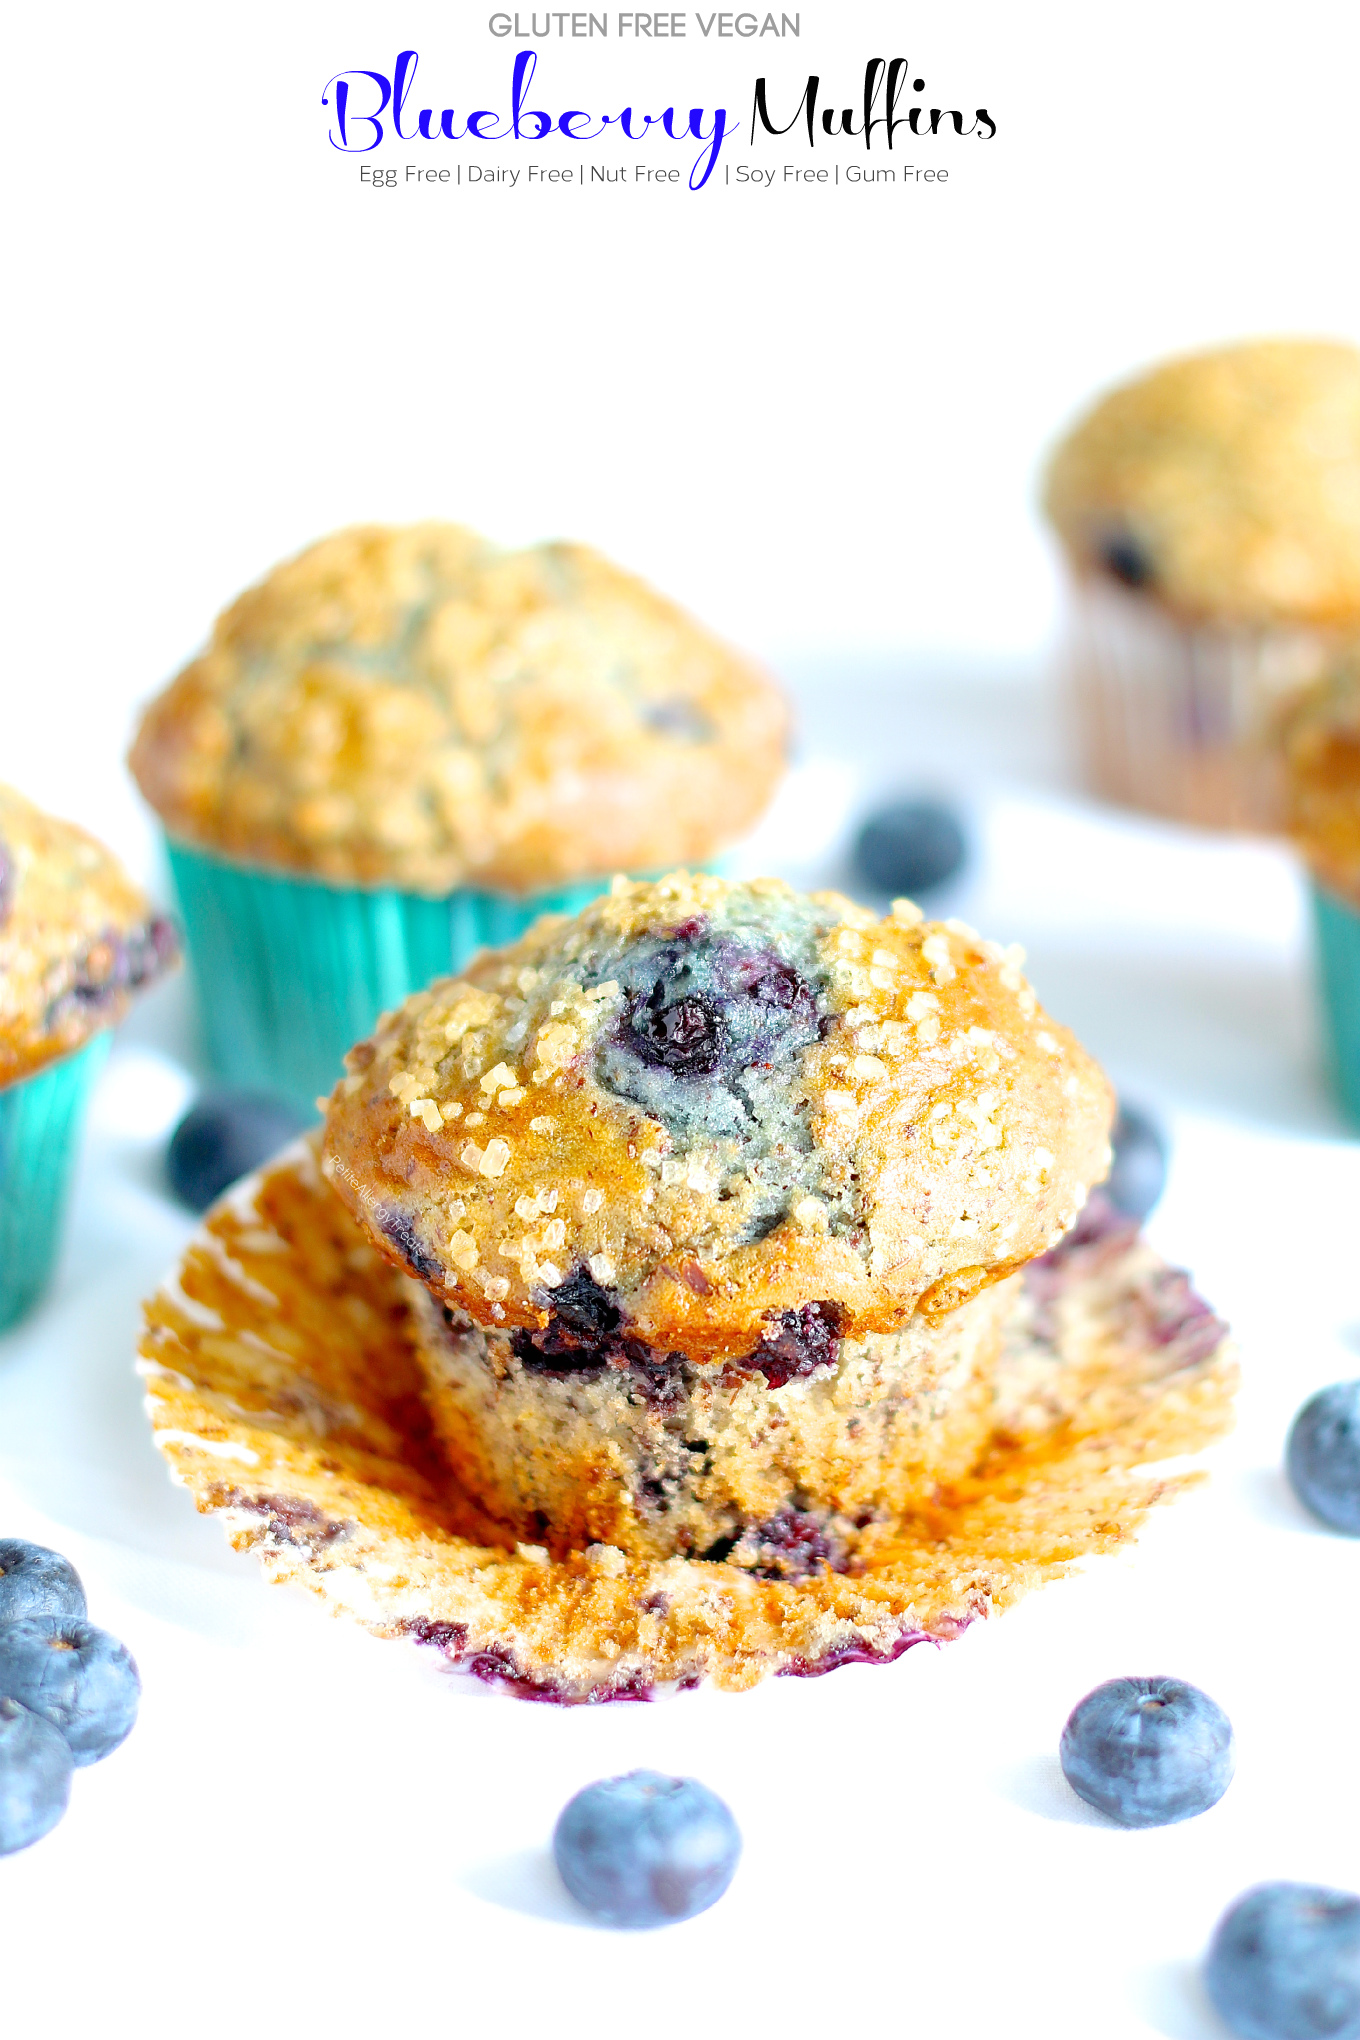 Gluten Free Vegan Blueberry Muffins (dairy free egg free) Recipe- Delicious HUGE Bakery style gluten free blueberry muffins! Super #FoodAllergy friendly- #dairyfree, #eggfree, #nutfree #soyfree